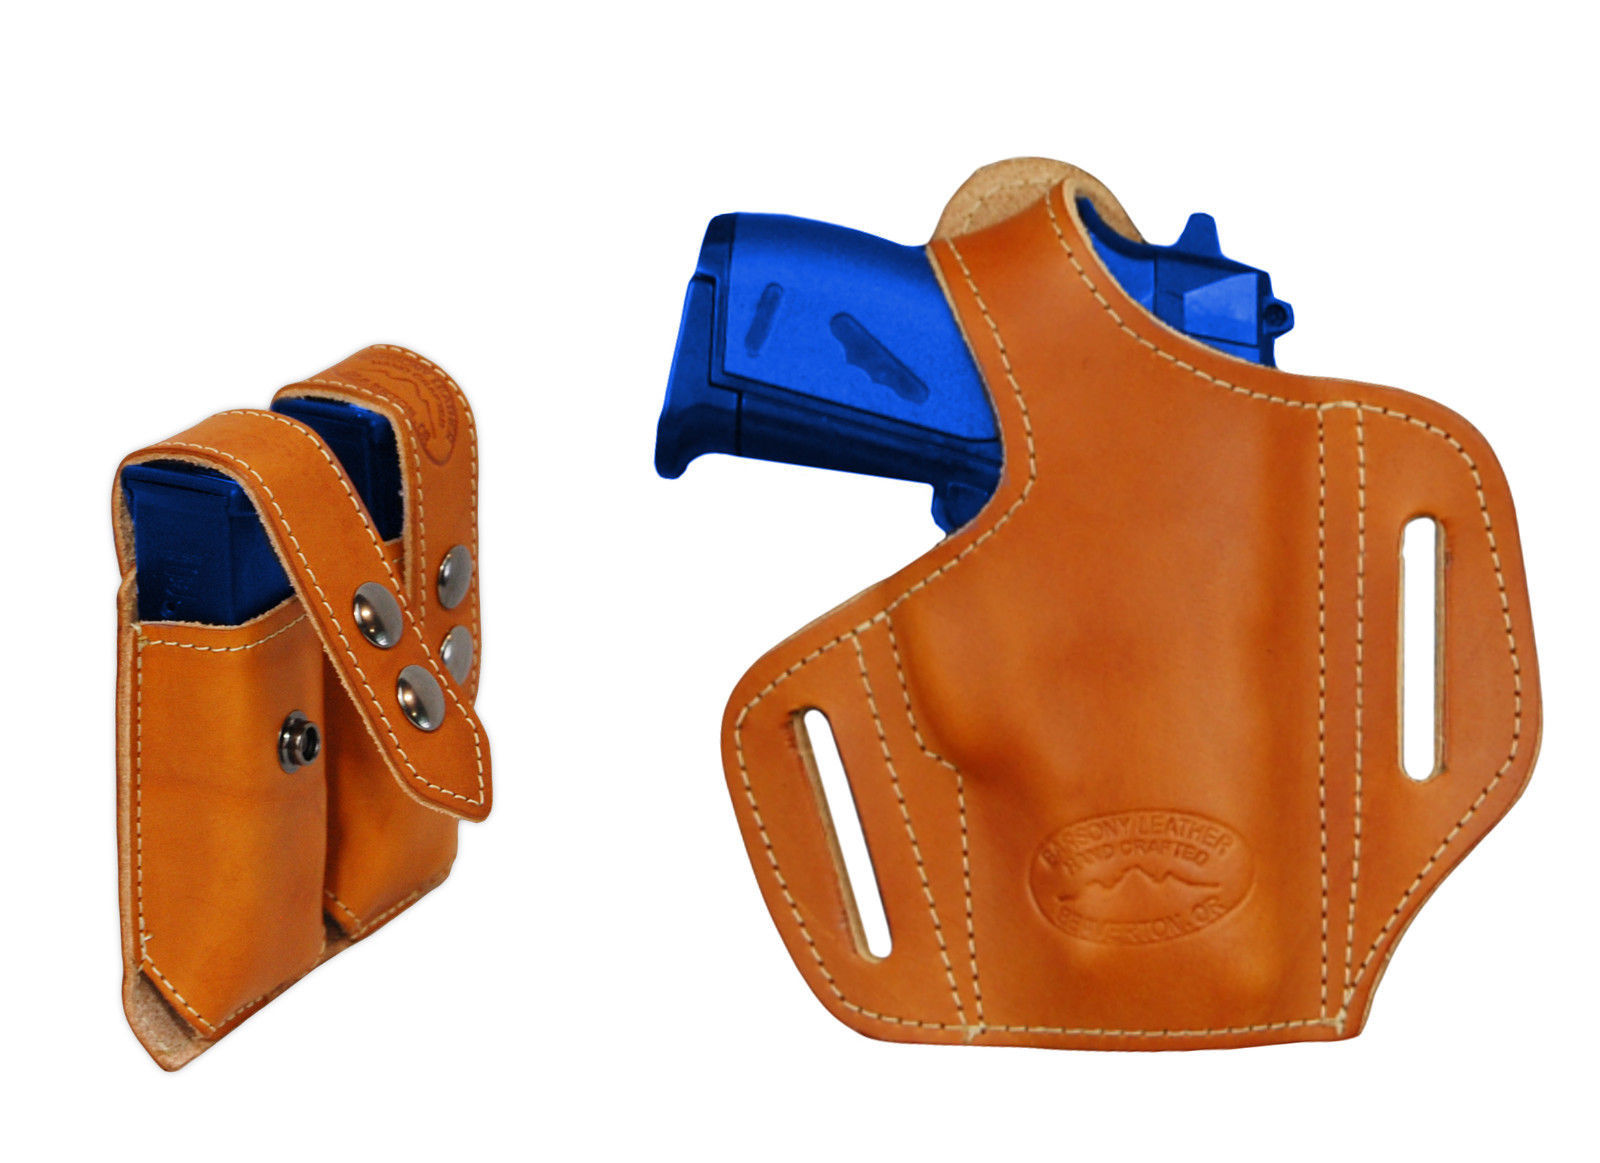 NEW Barsony Tan Leather Pancake Gun Holster + Mag Pouch Smith&Wesson 22 25 380